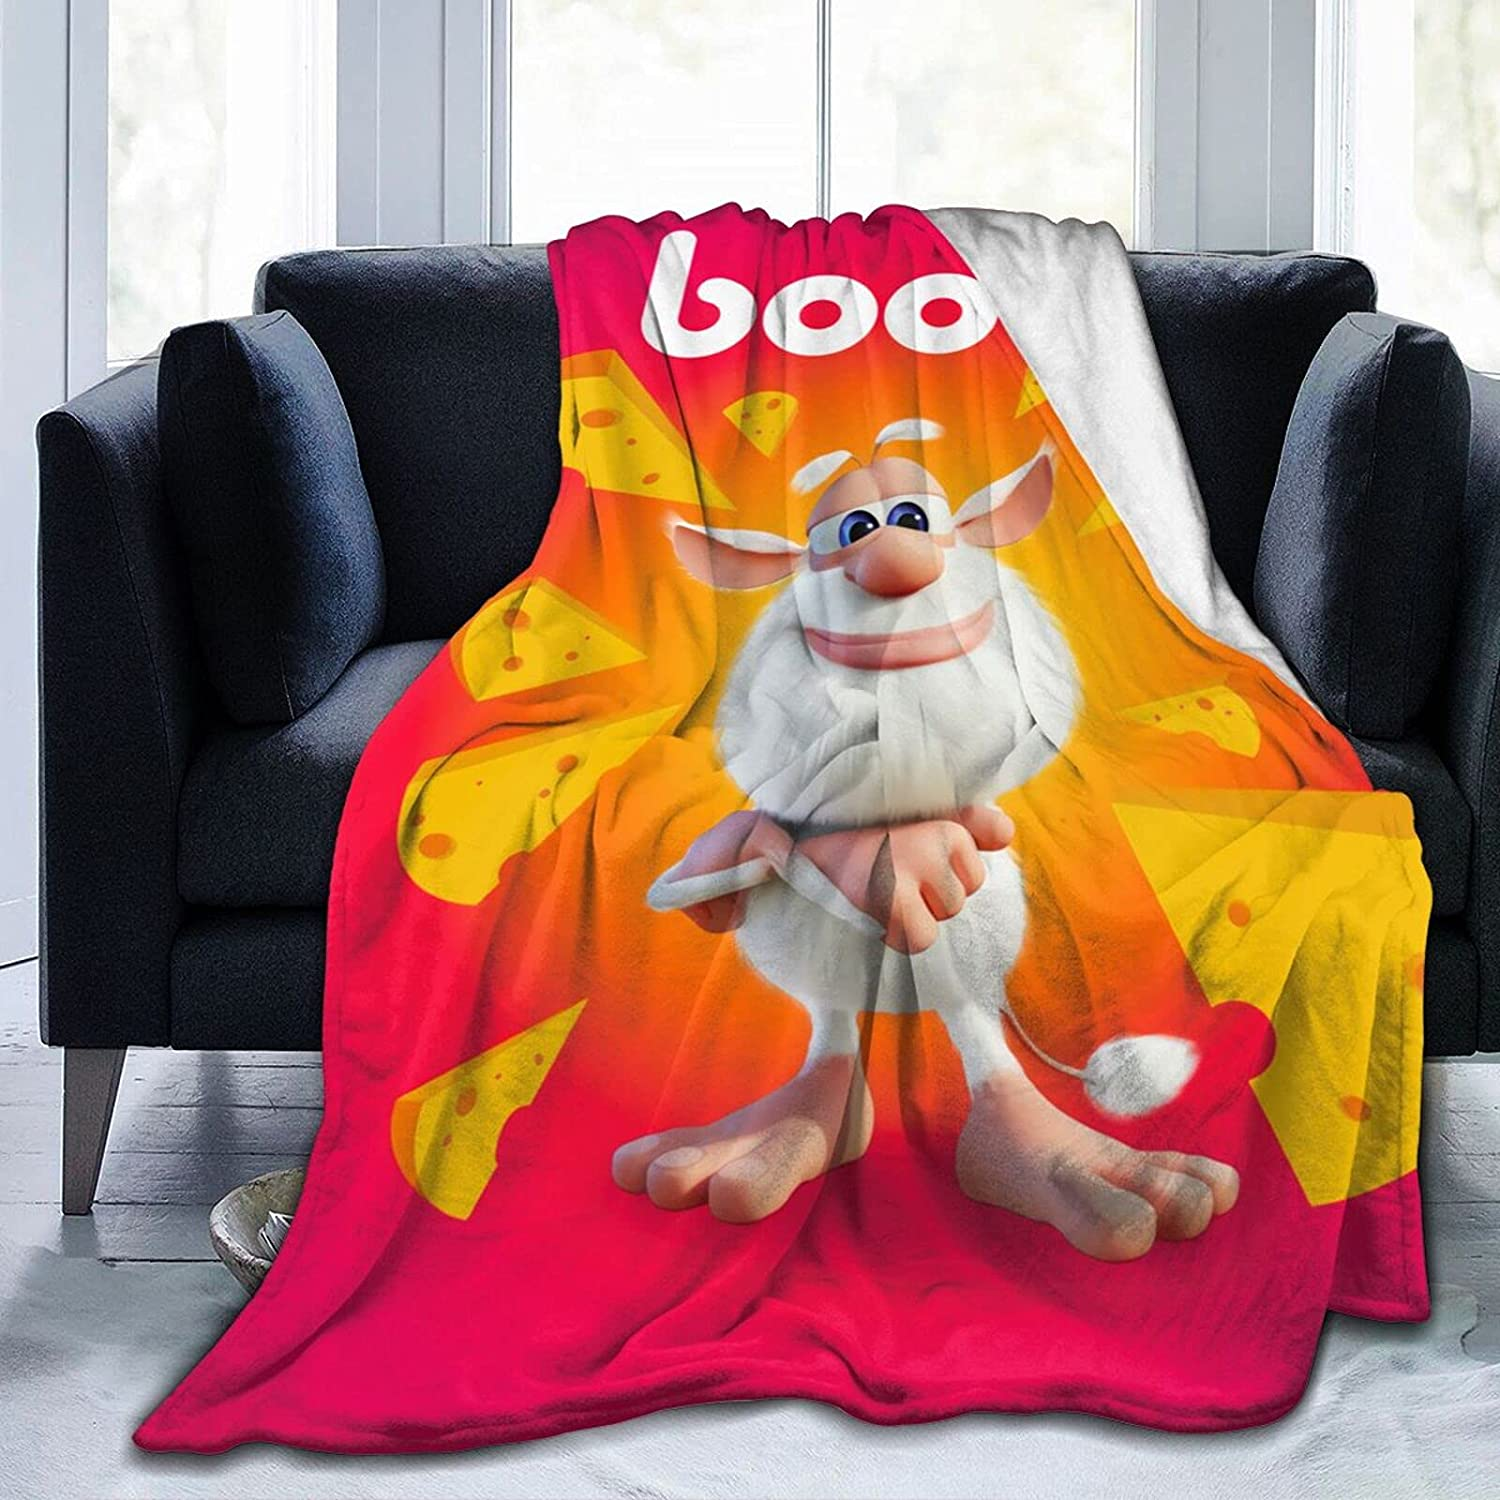 Nedrodapphire Booba Ultra Japan Maker New Soft and Flannel Fluffy Max 47% OFF Blanket Throw